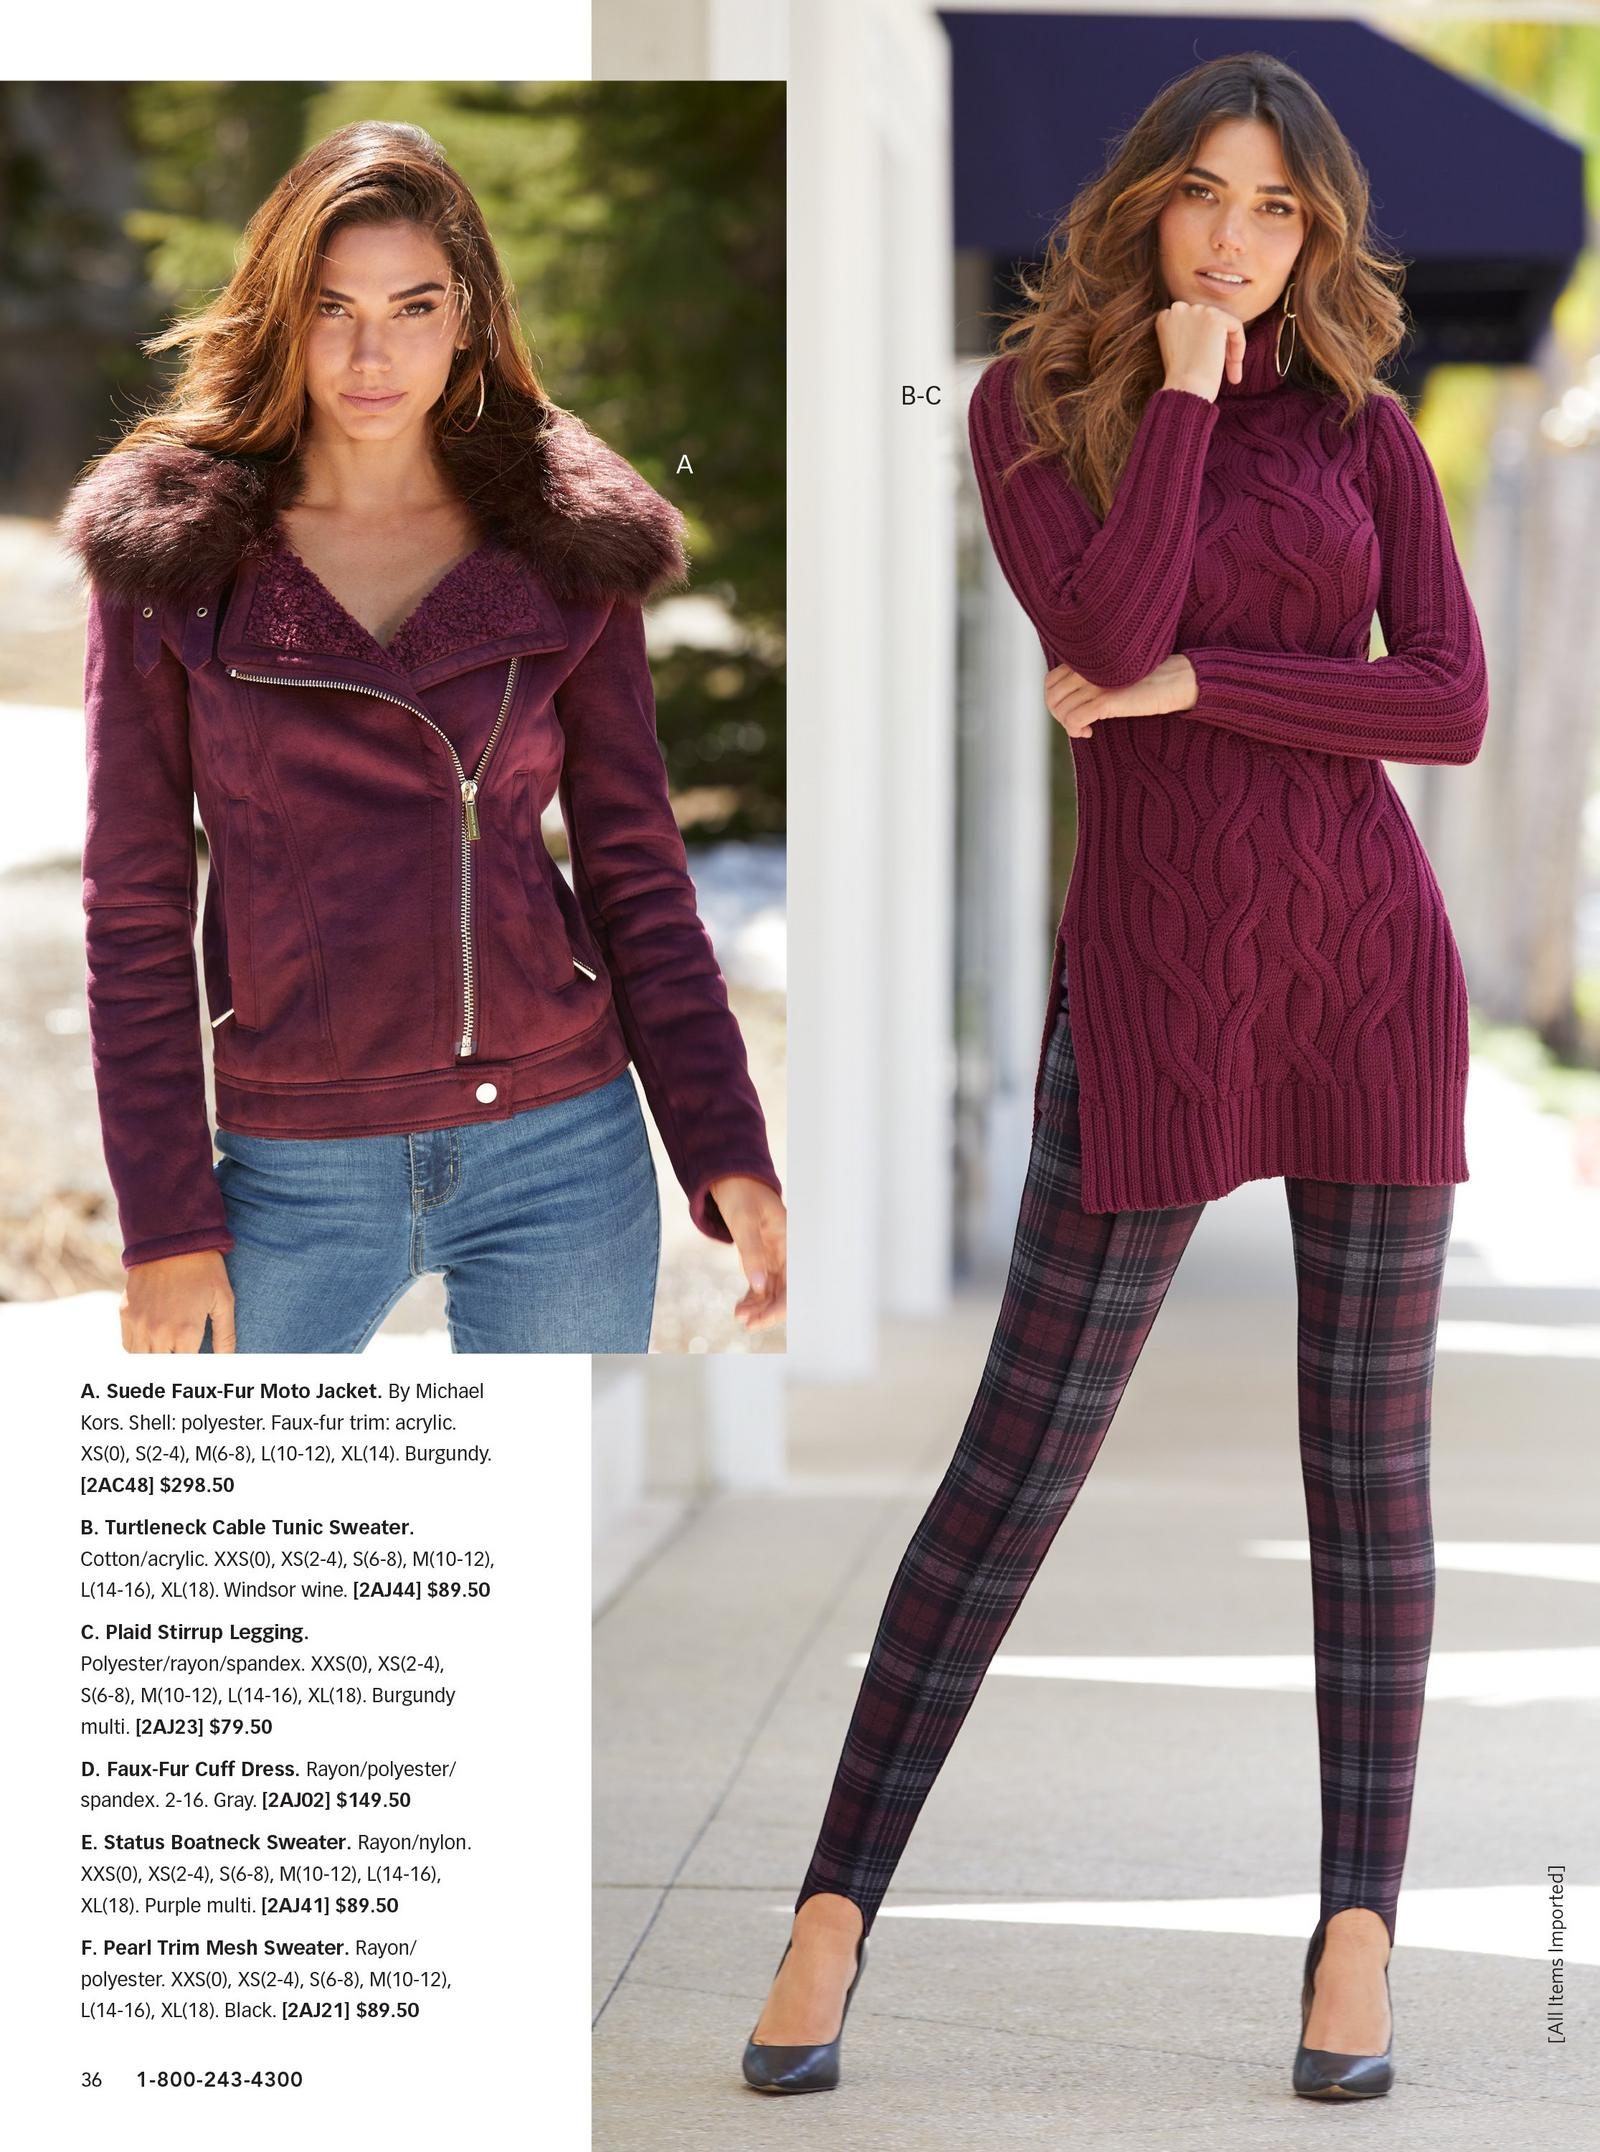 left: model wearing suede faux-fur moto jacket in burgundy. right: model wearing wine tunic sweater with plaid leggings.